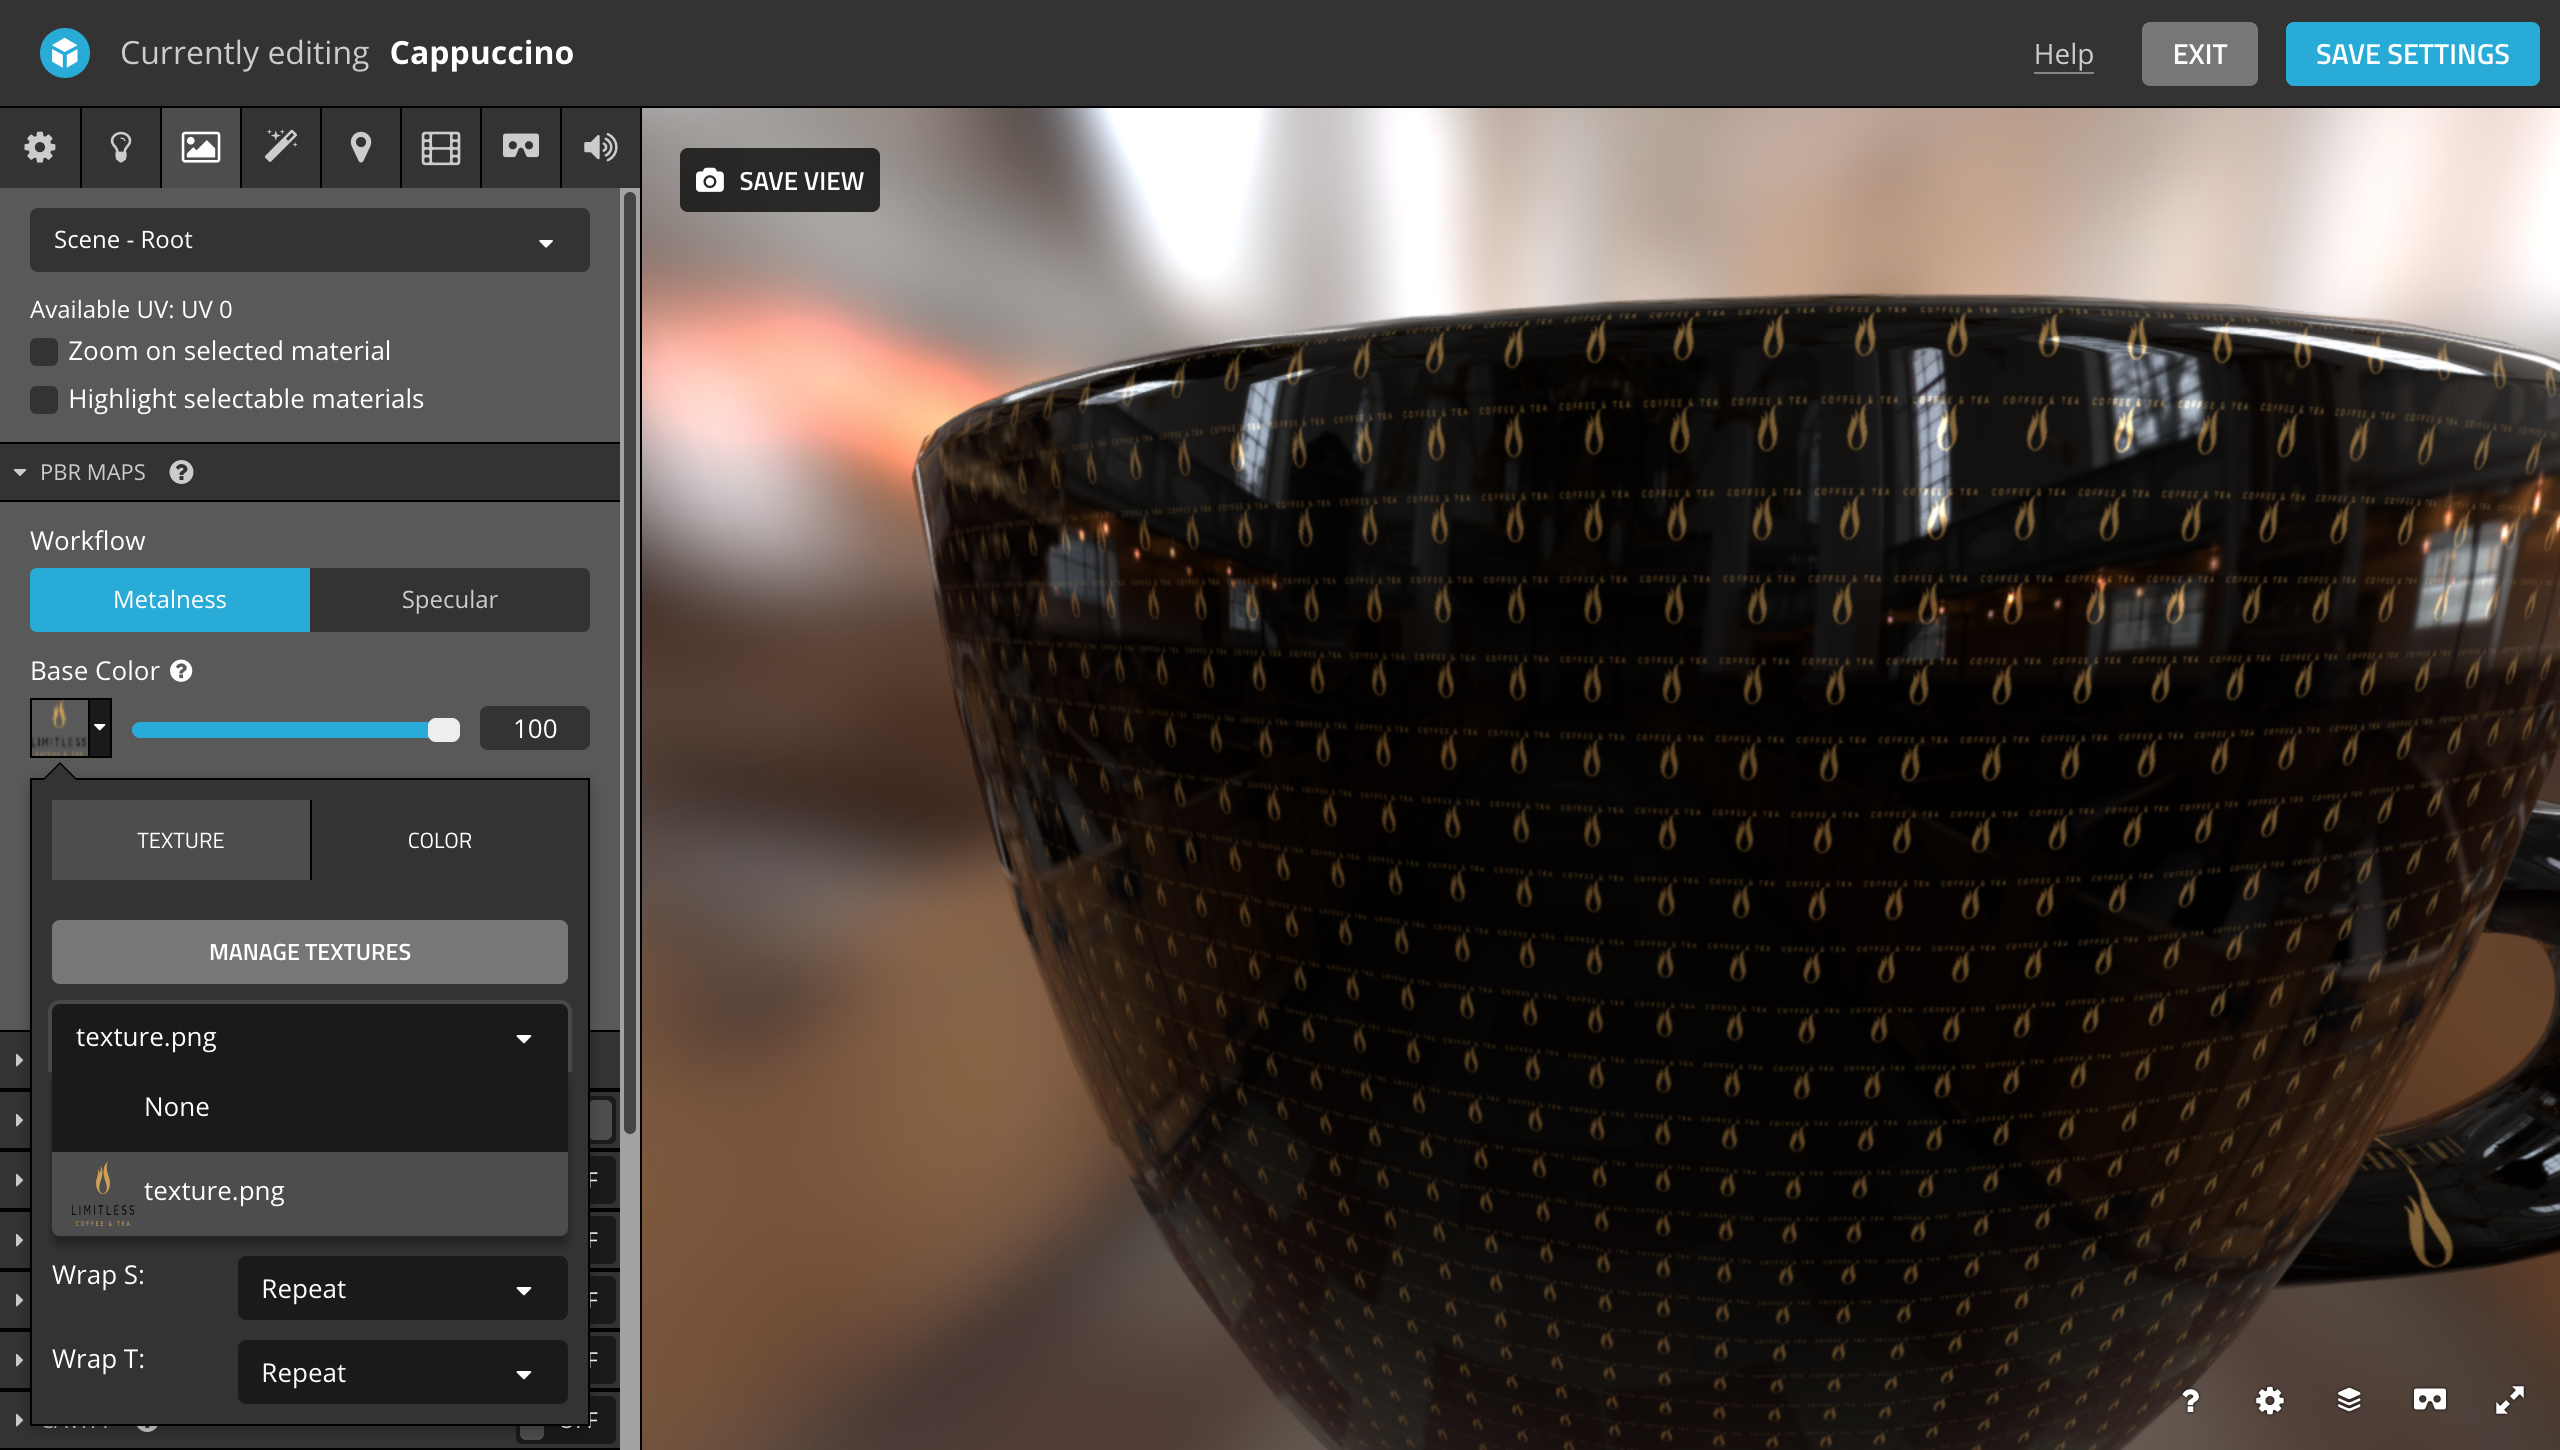 How to place an bitmap logo on 3D coffee mug in Sketchfab